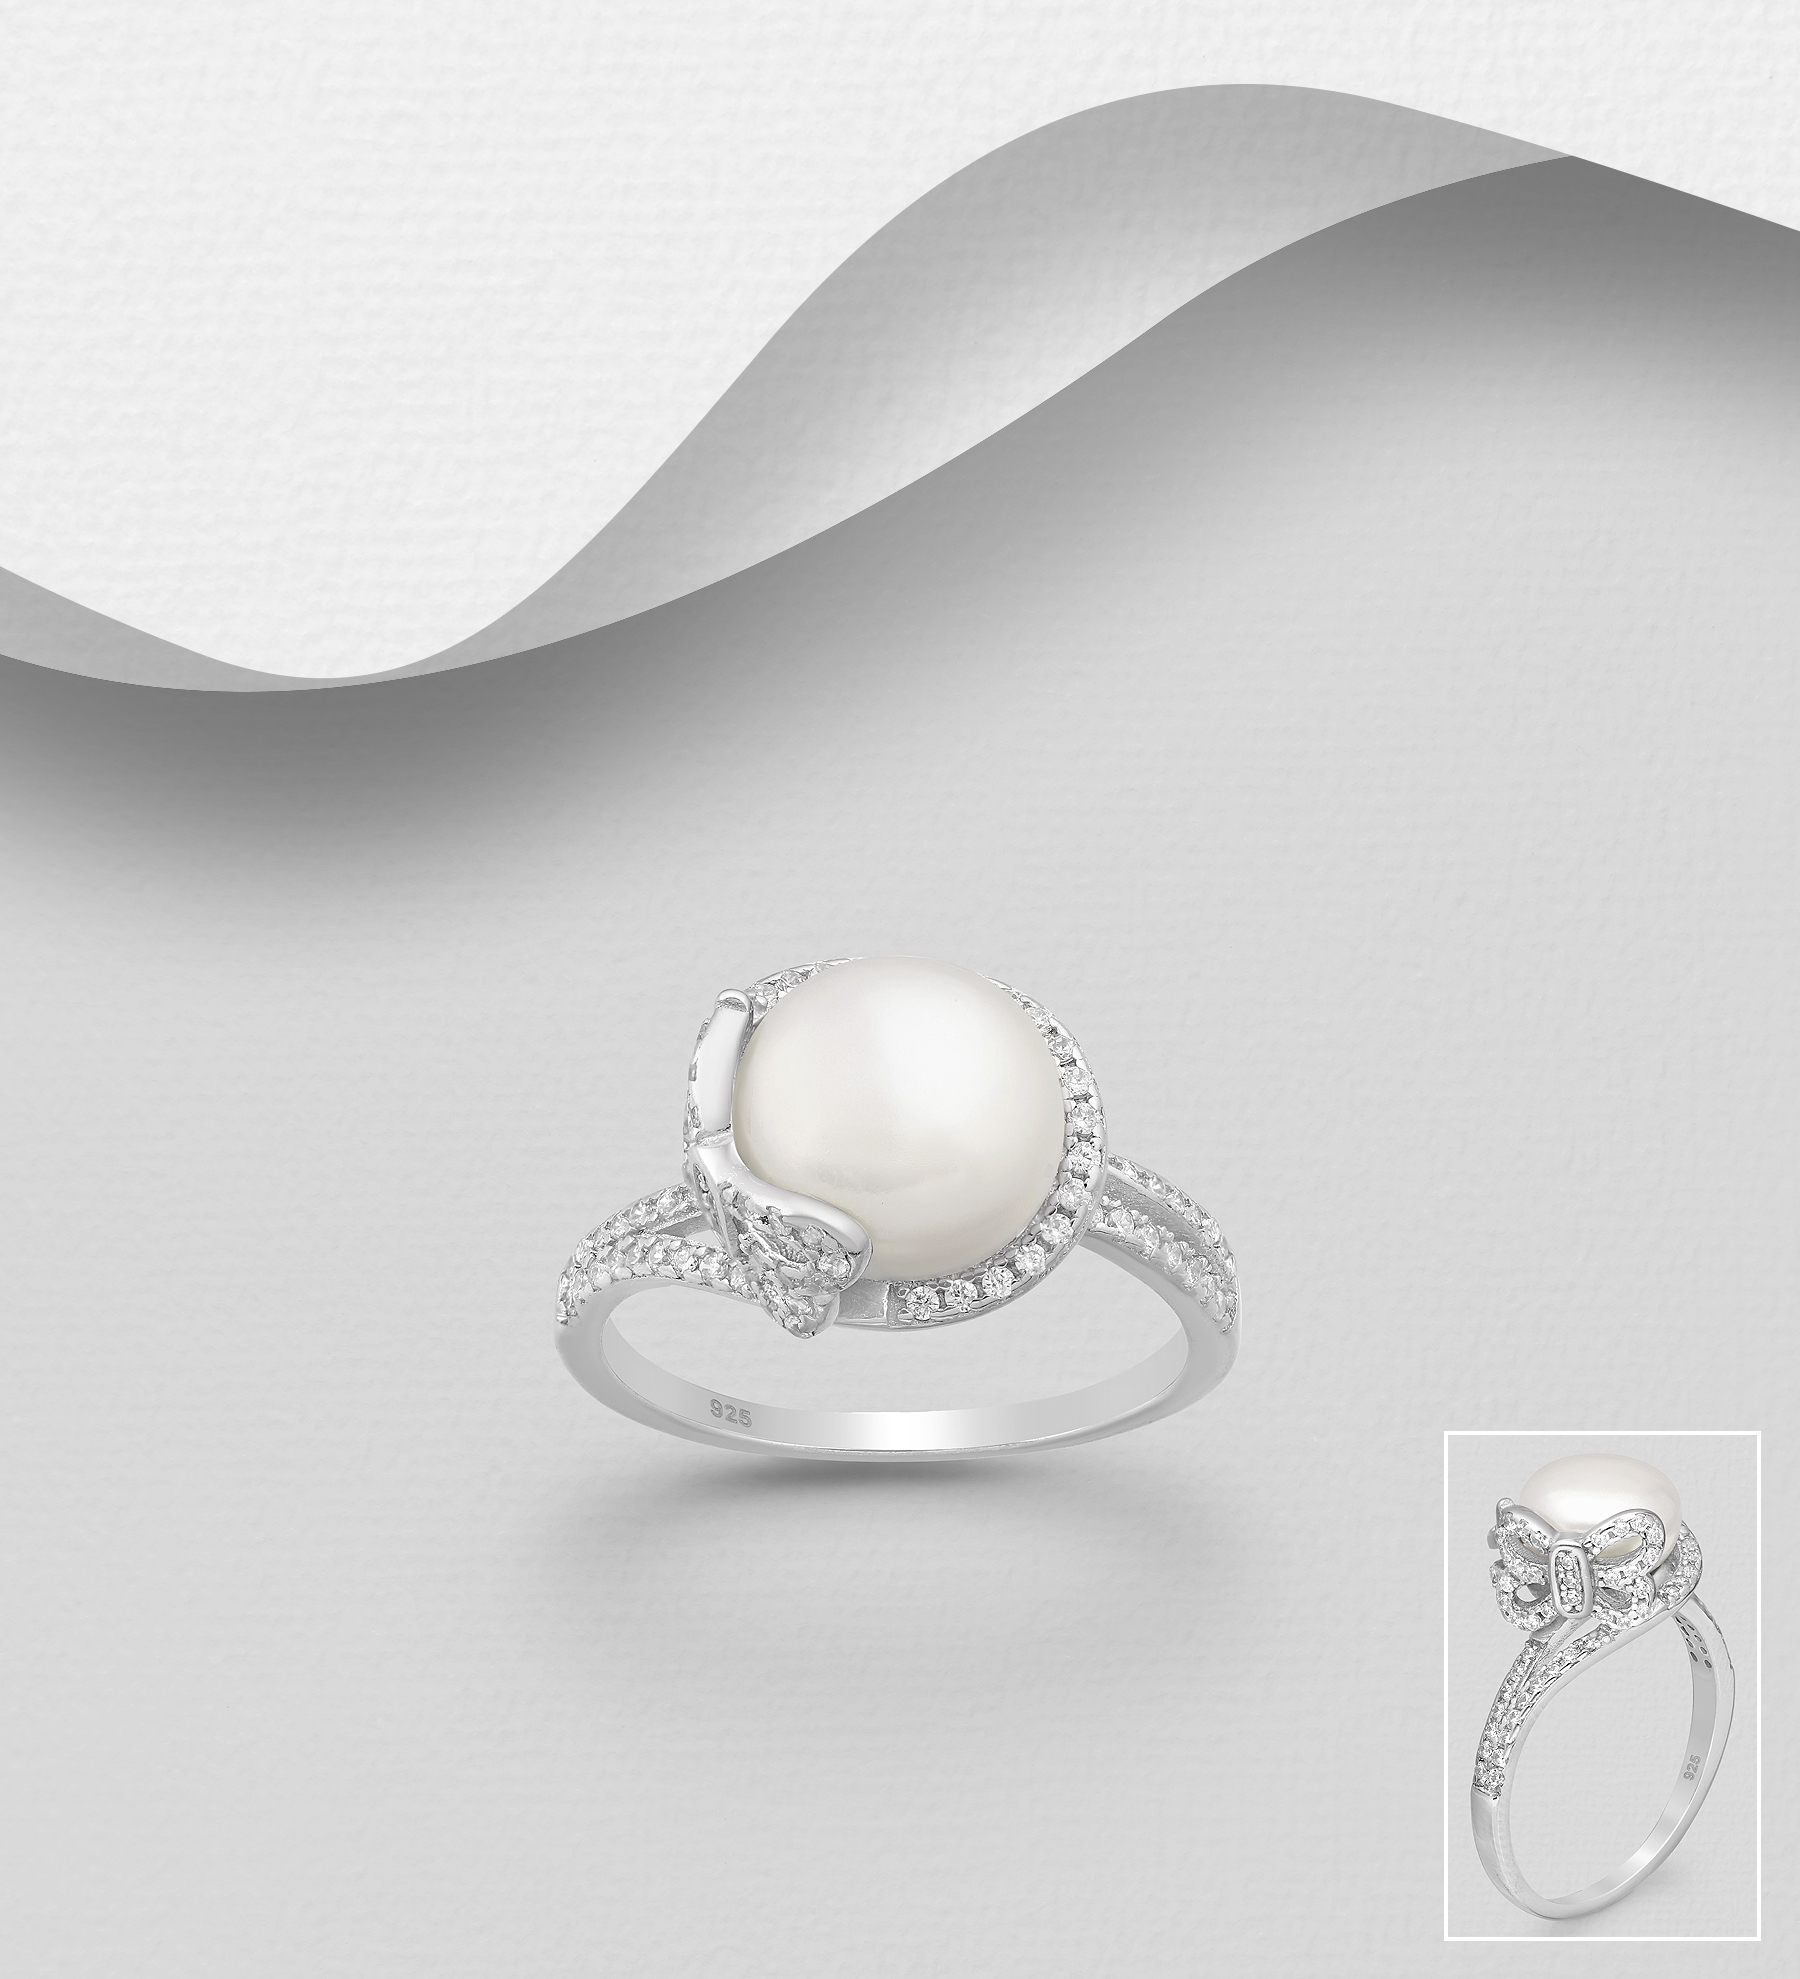 382-5420 - 925 Sterling Silver Ring Featuring Butterfly Decorated with CZ Simulated Diamonds and Freshwater Pearl